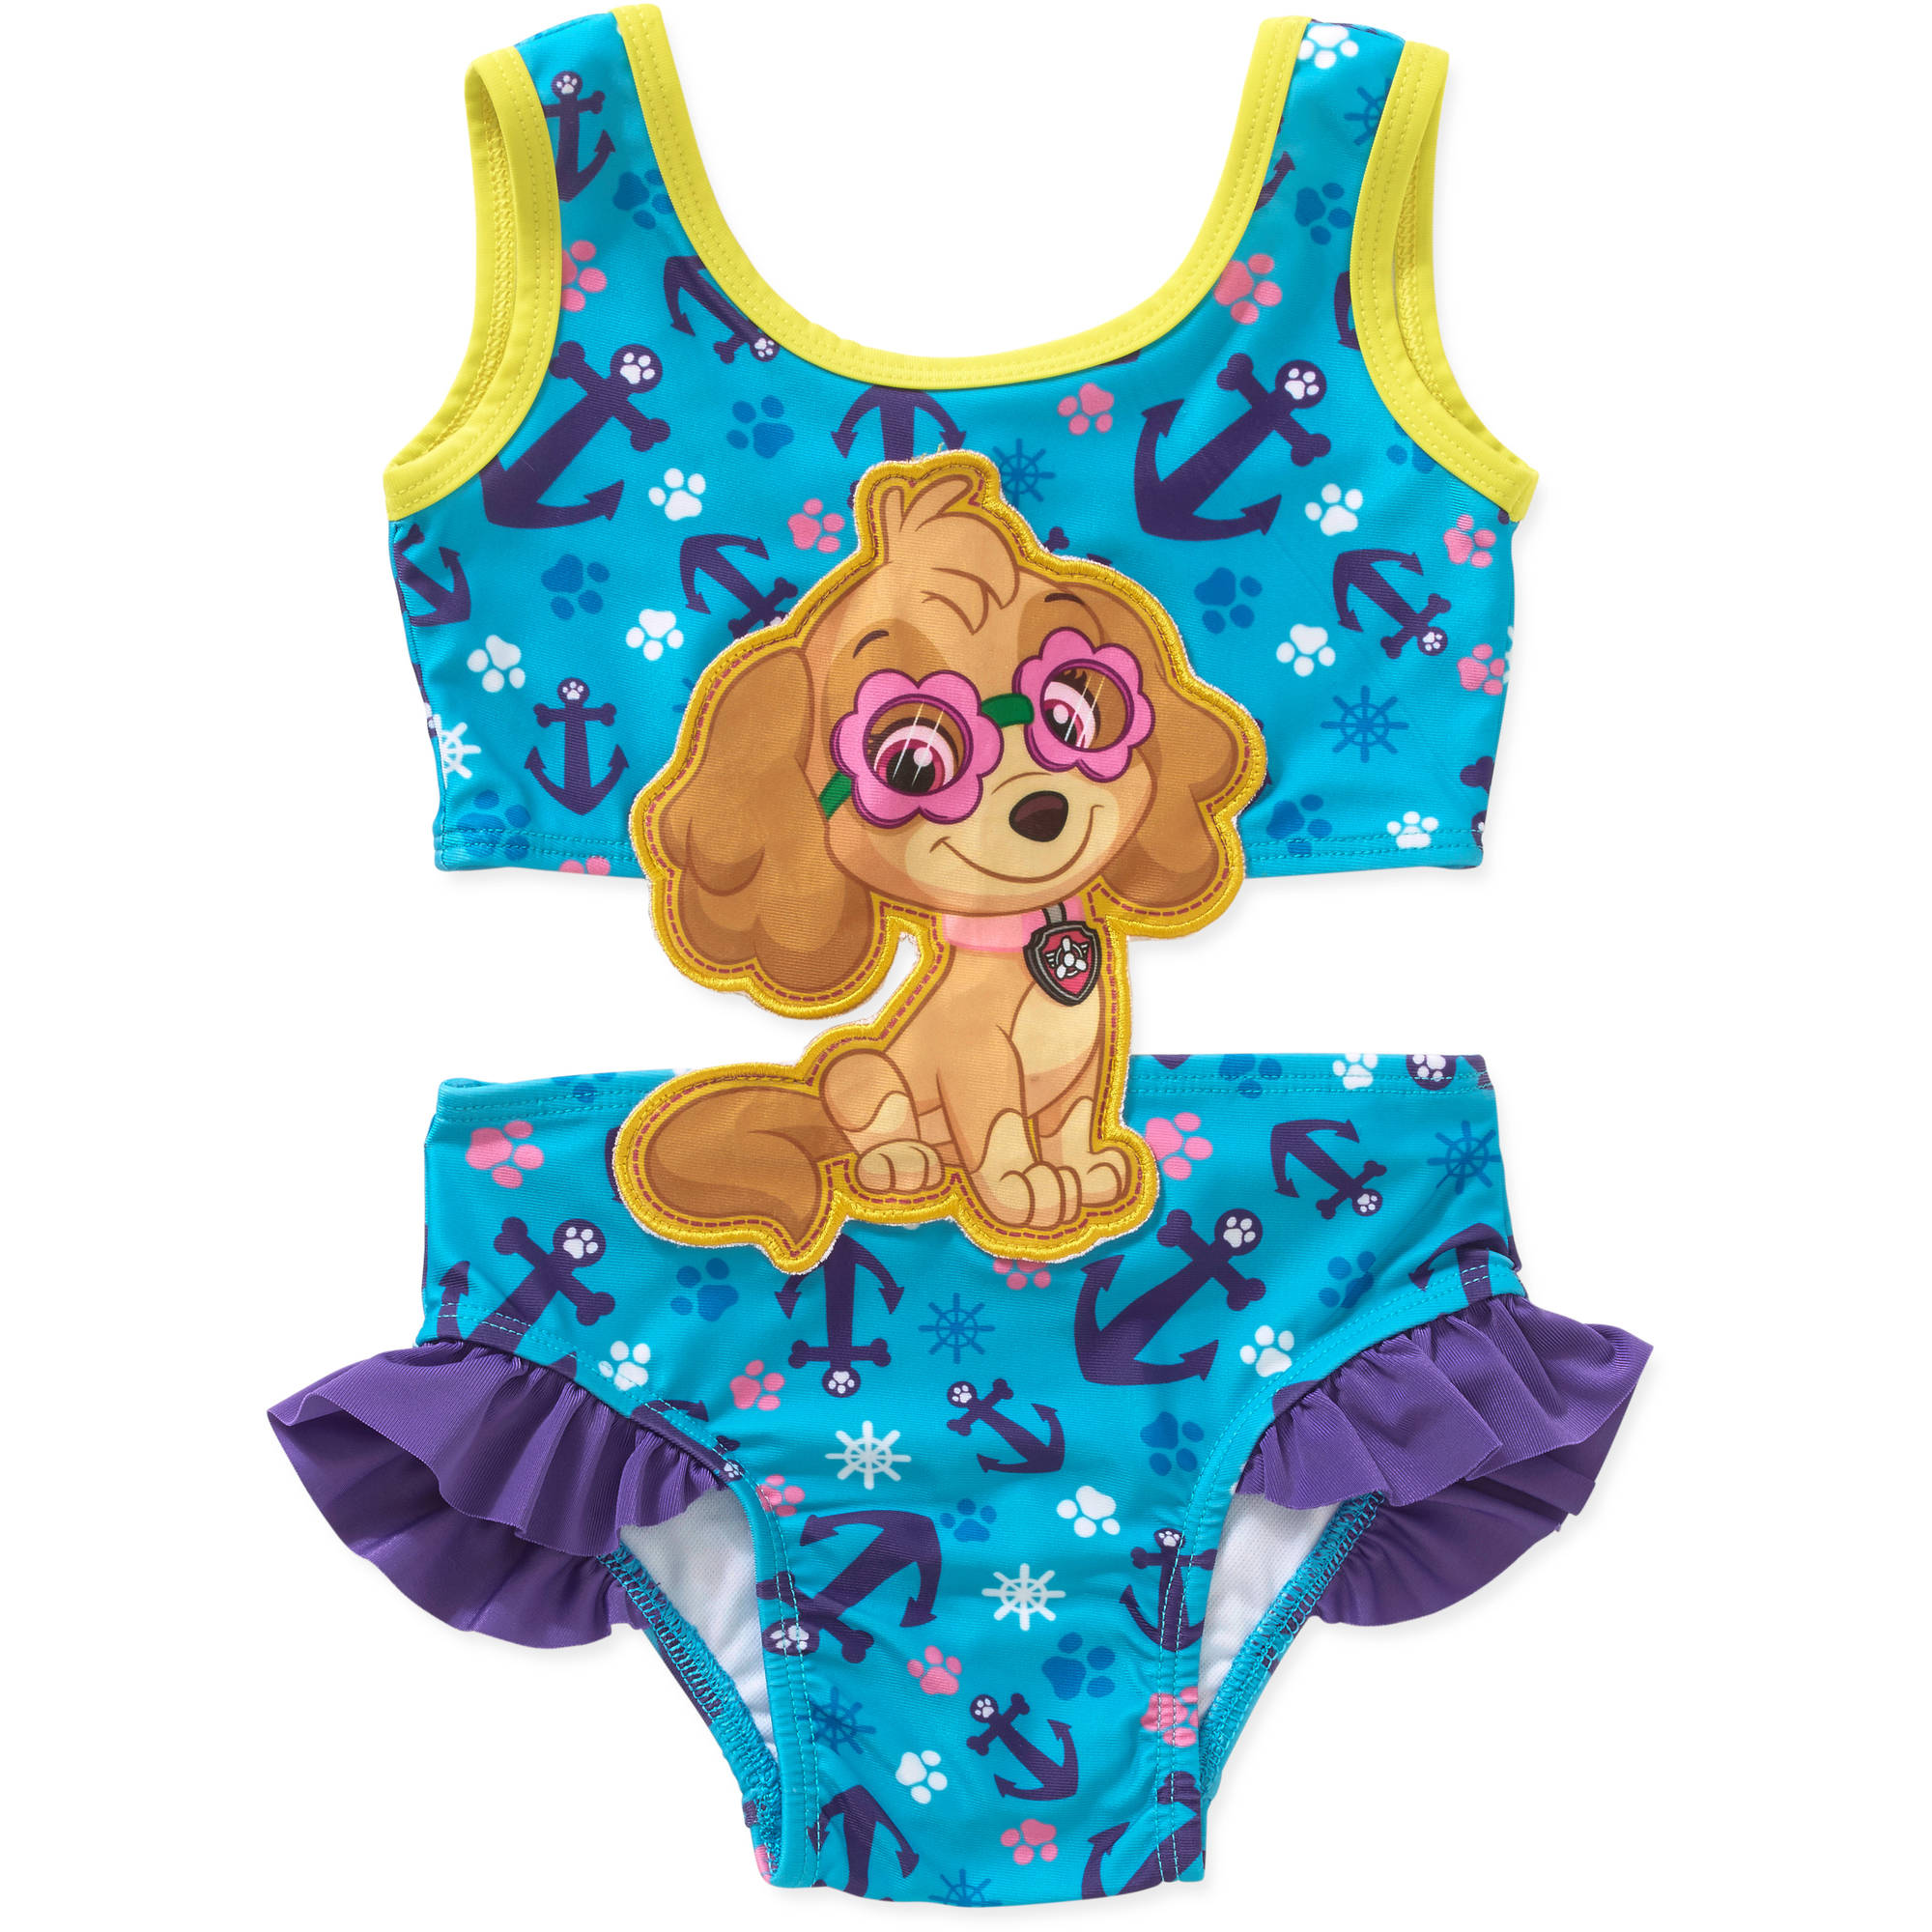 Paw Patrol Toddler Girl Swim Suit with Applique